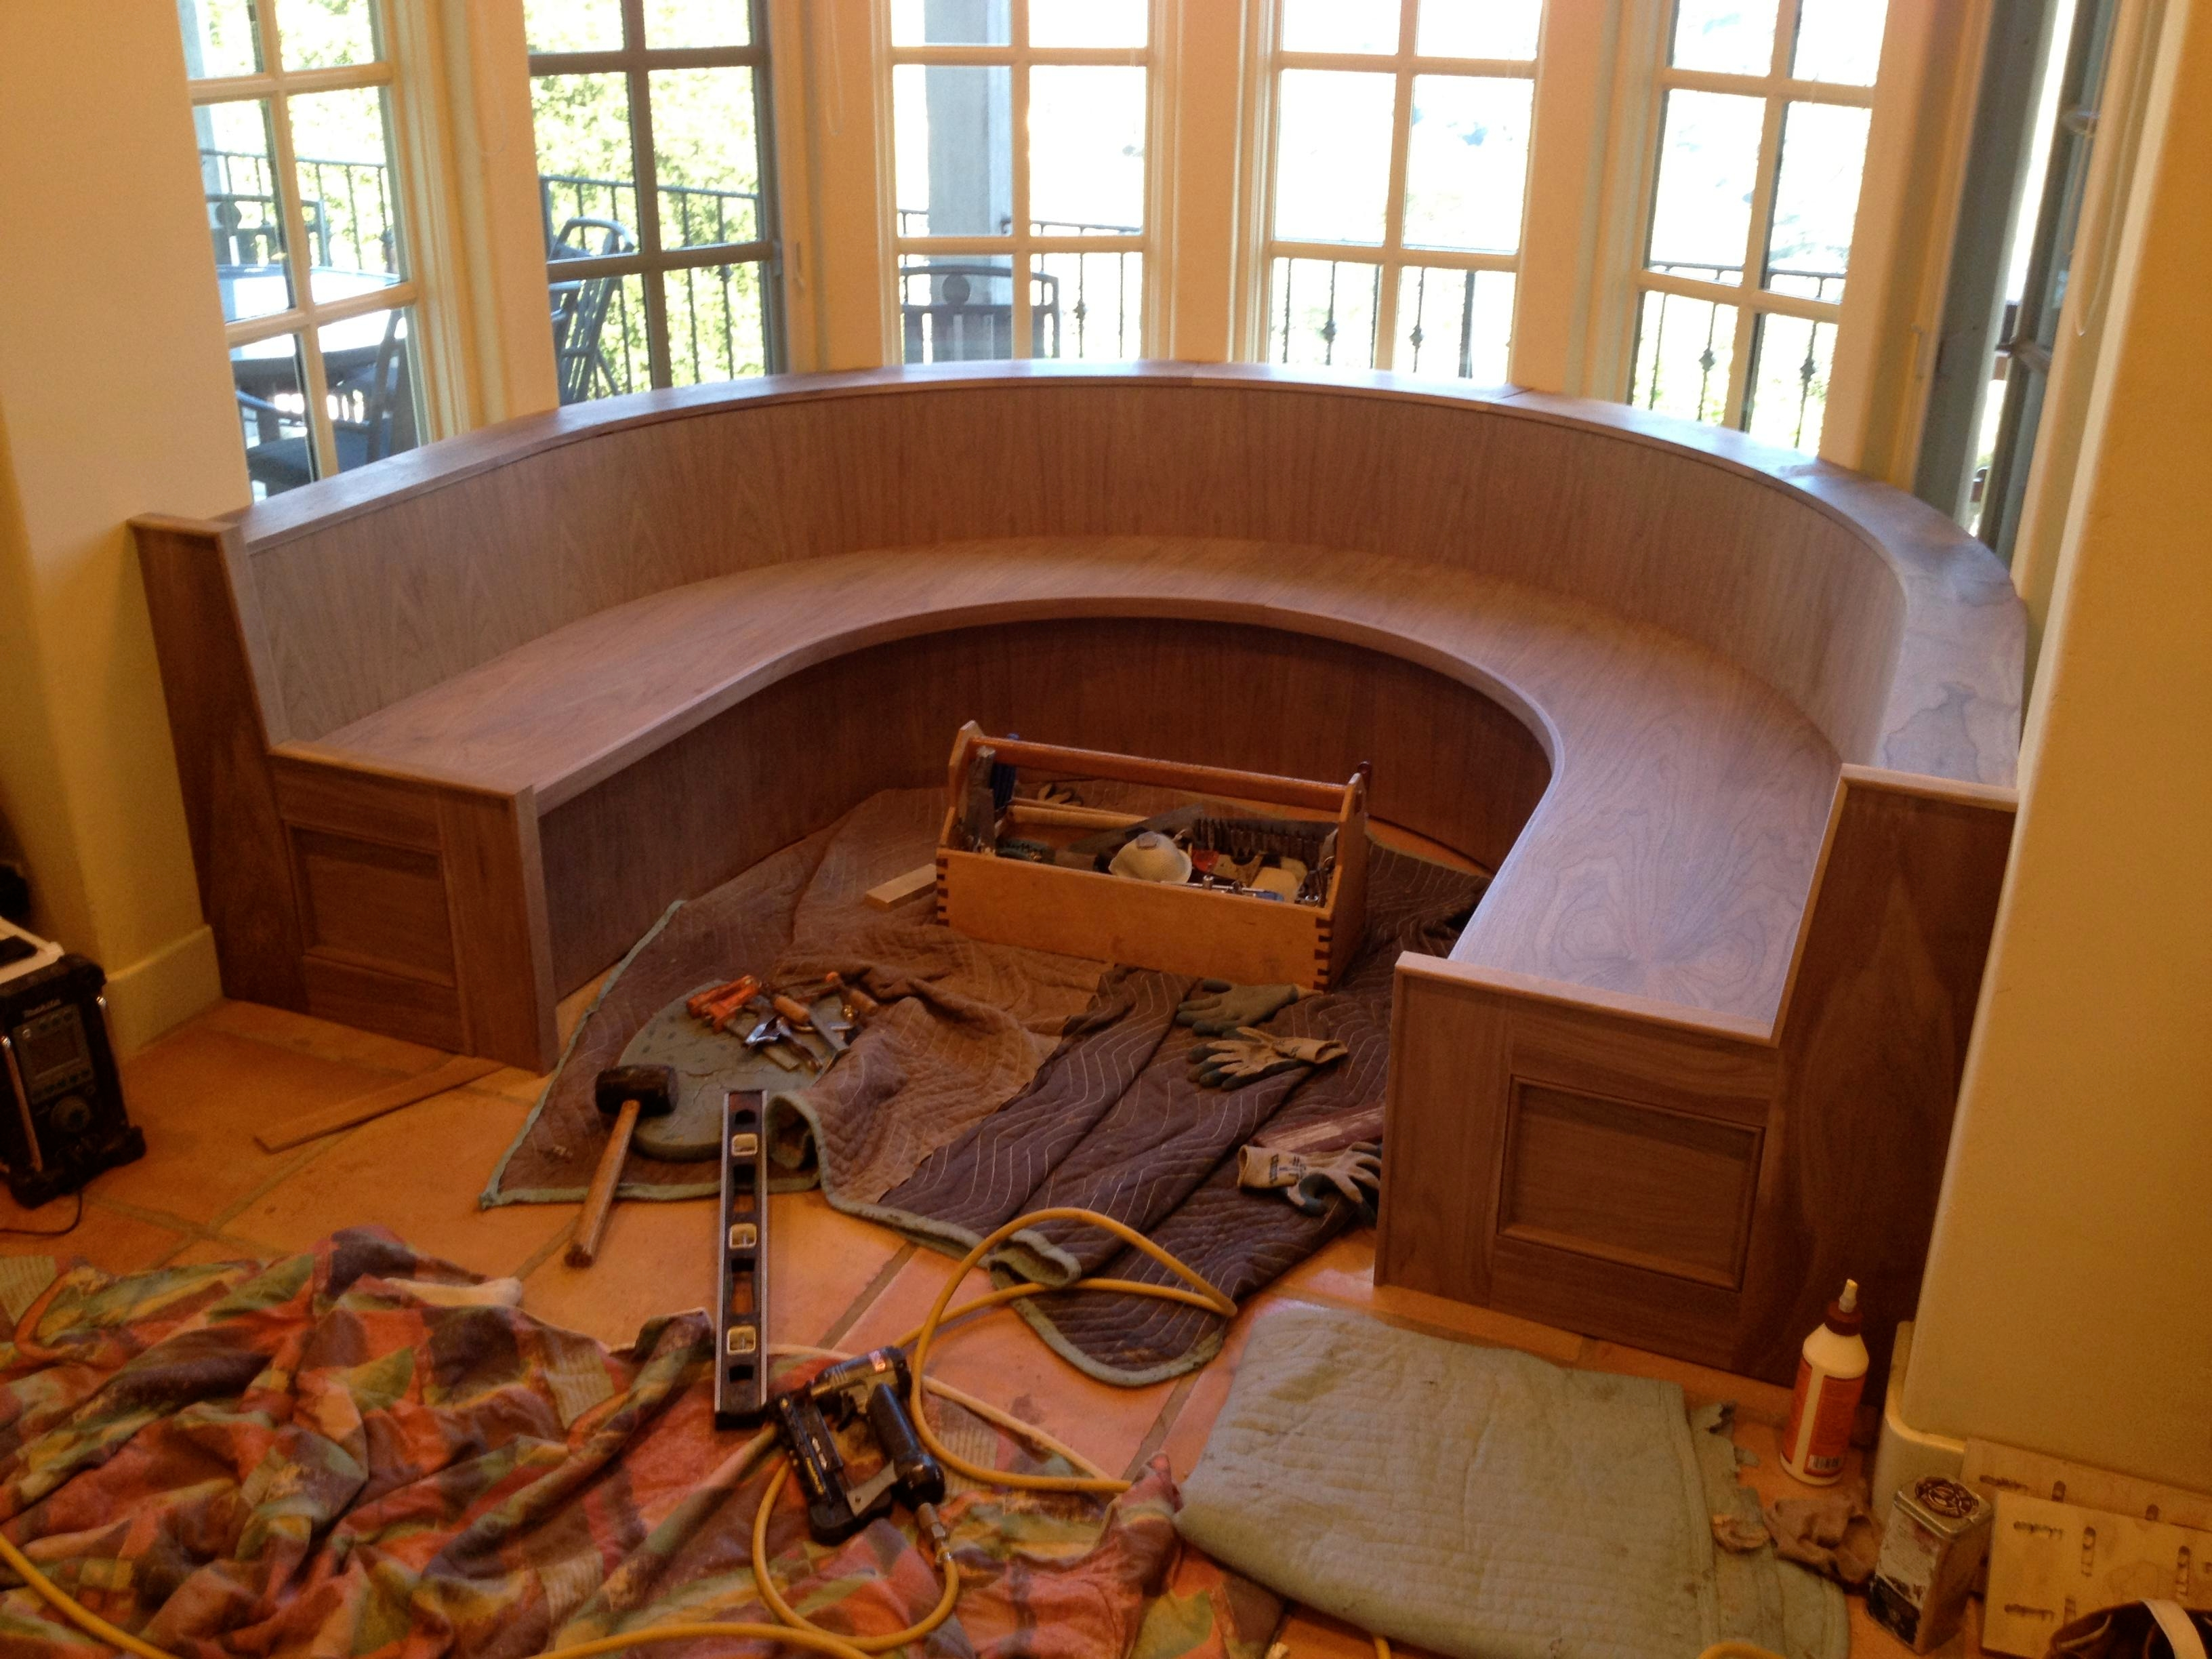 Banquette before bleaching, sealing and custom table.